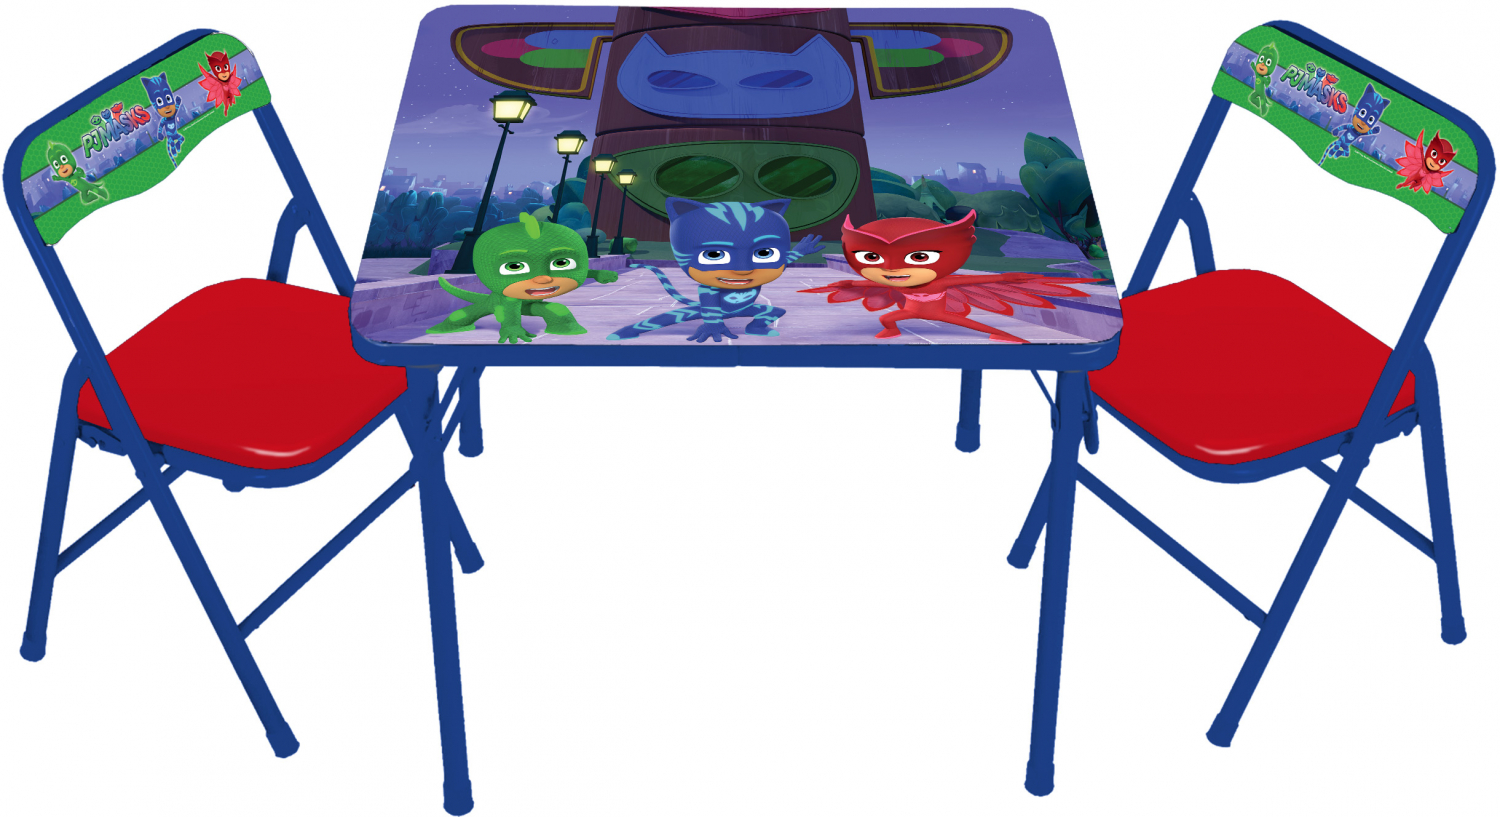 Phenomenal Details About Kids Activity Table Chair Set Disney Pj Masks Erasable Folding Desk Padded Chair Caraccident5 Cool Chair Designs And Ideas Caraccident5Info